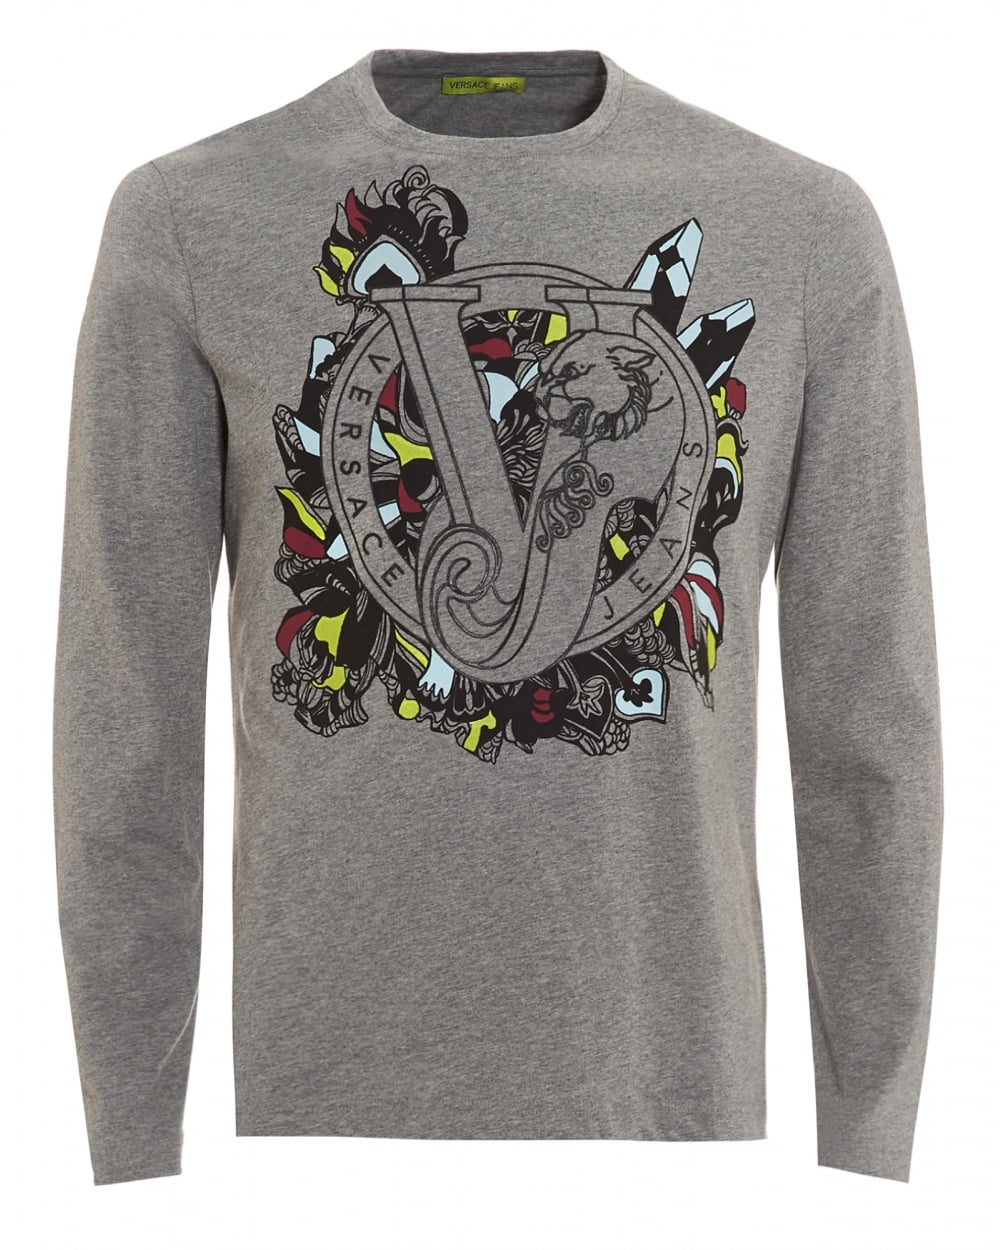 Versace jeans mens grey t shirt long sleeve coloured for Versace style shirt mens